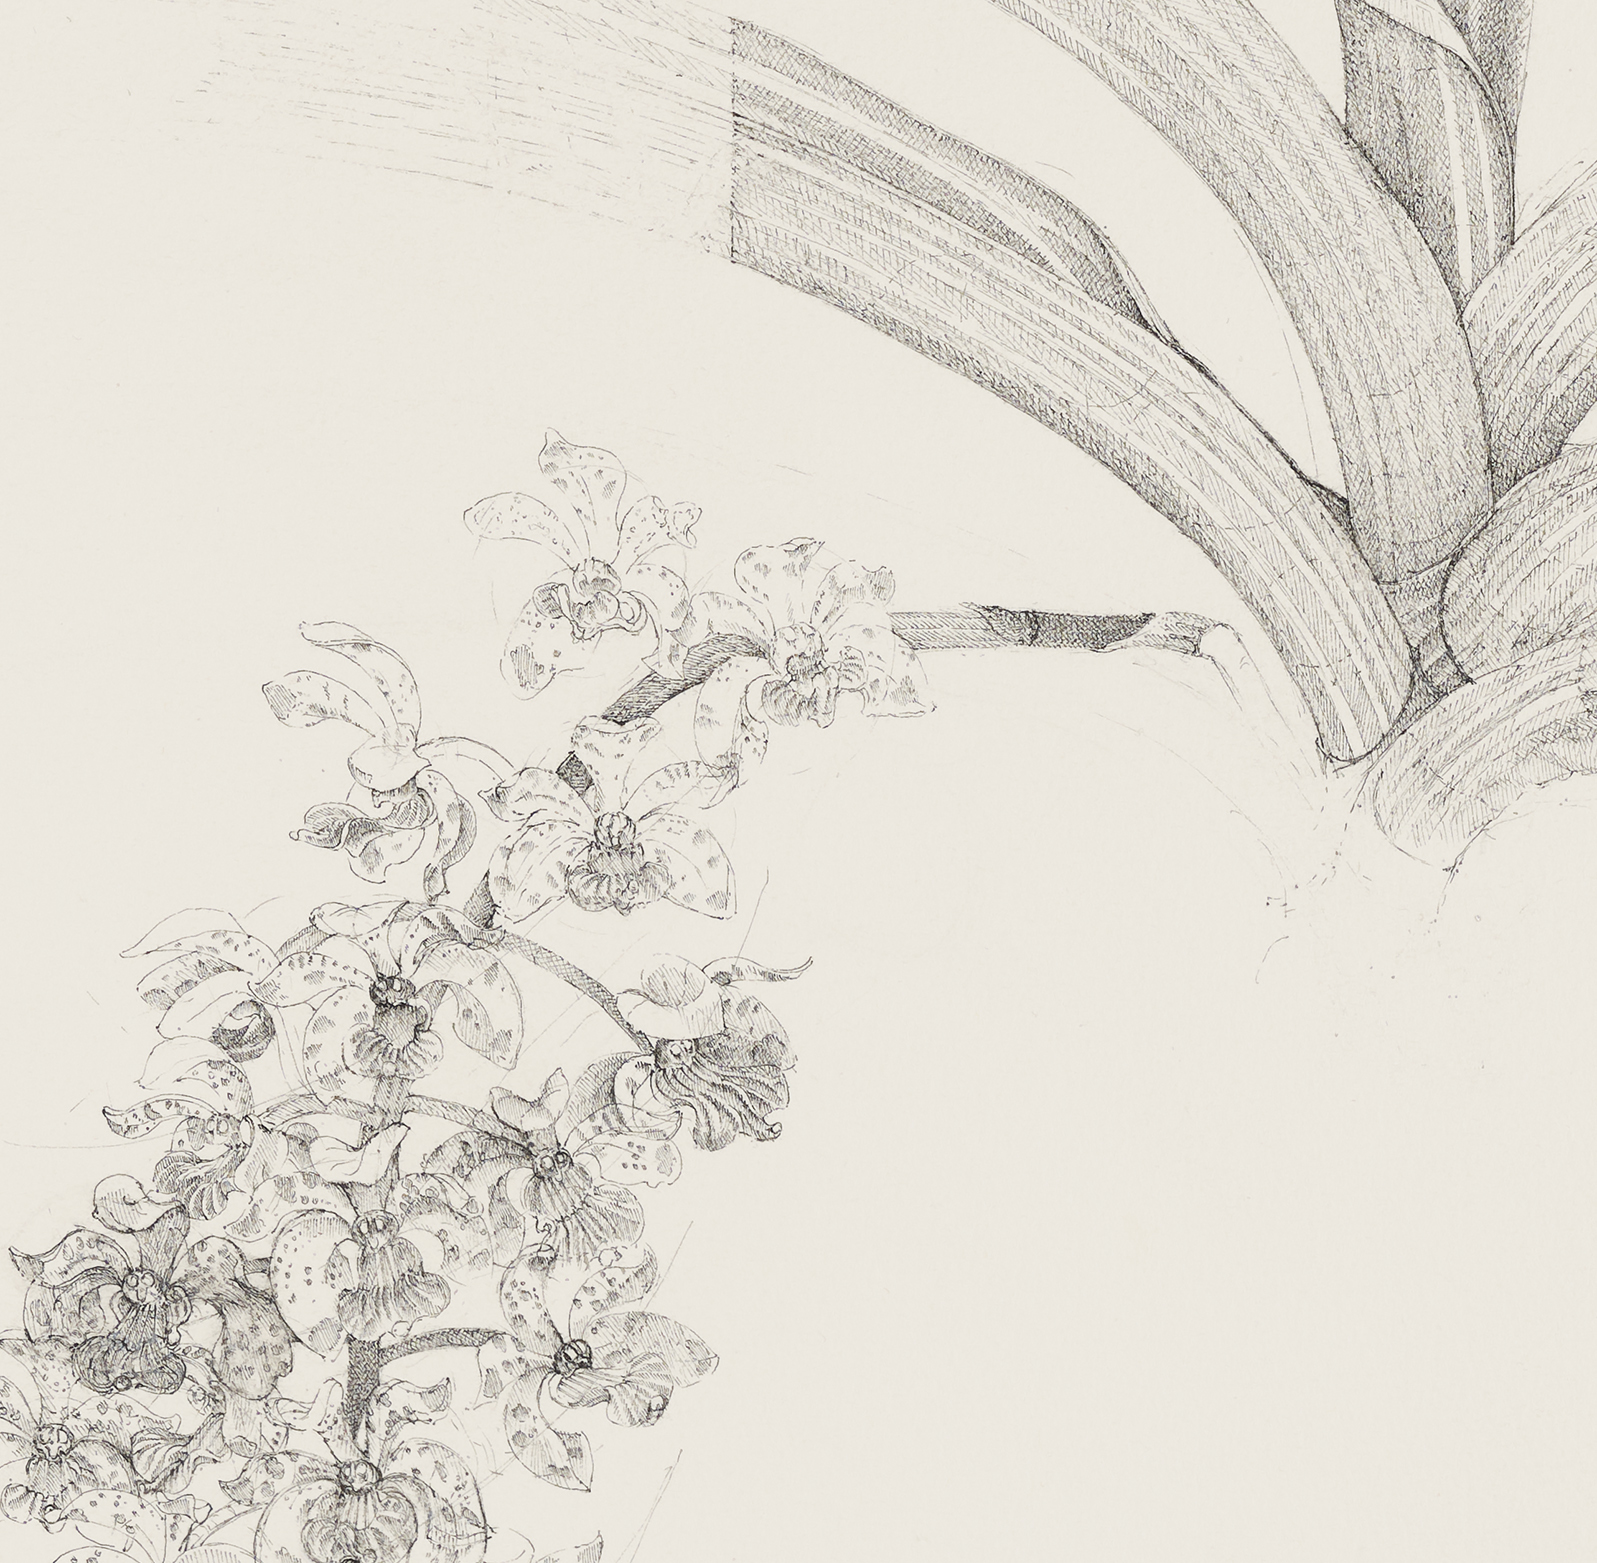 Charmian Johnson, Foxtail Orchid: Rhyncostus Violacea X Rhyncostus Gigantea (detail), 1987, ink and graphite on paper, 27 x 26 in. (67 x 65 cm) by